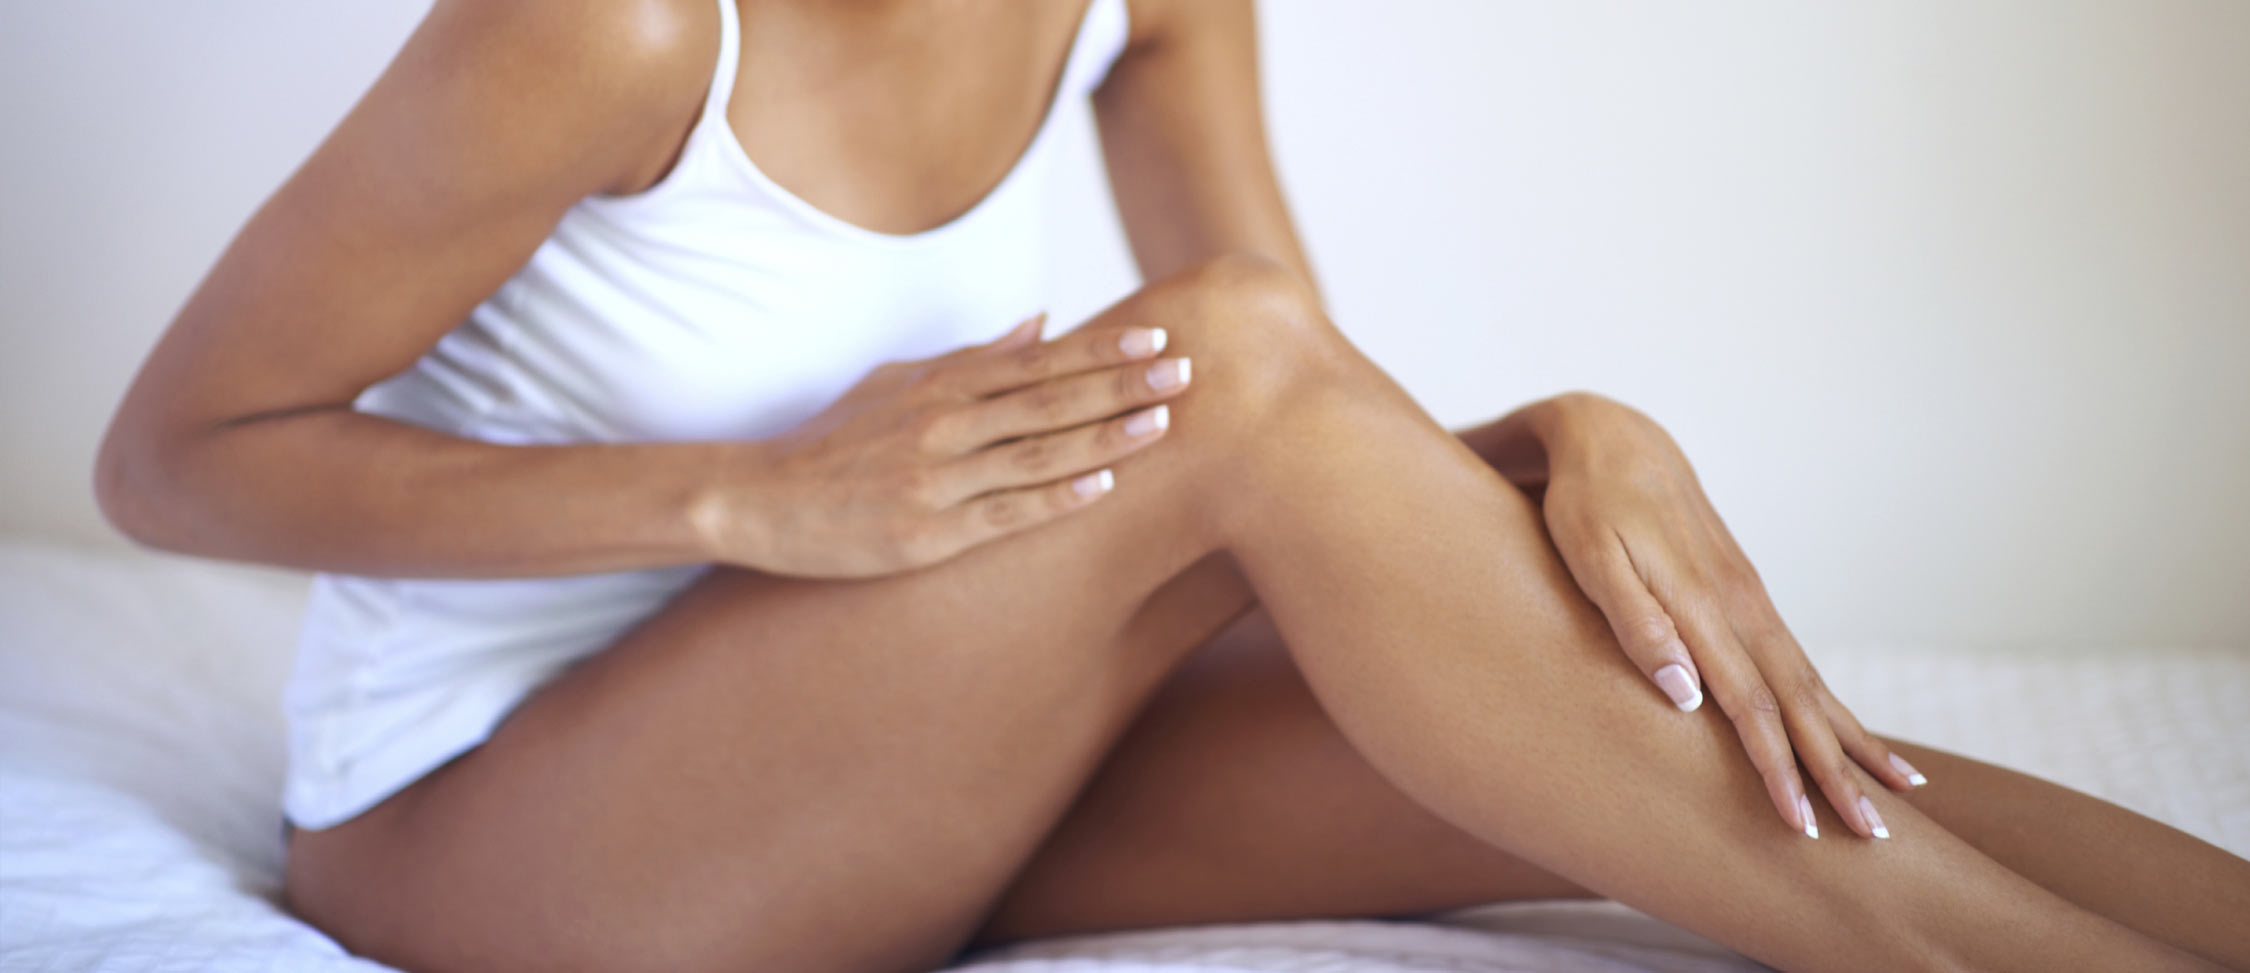 St. Louis Vein Experts - Sclerotherapy